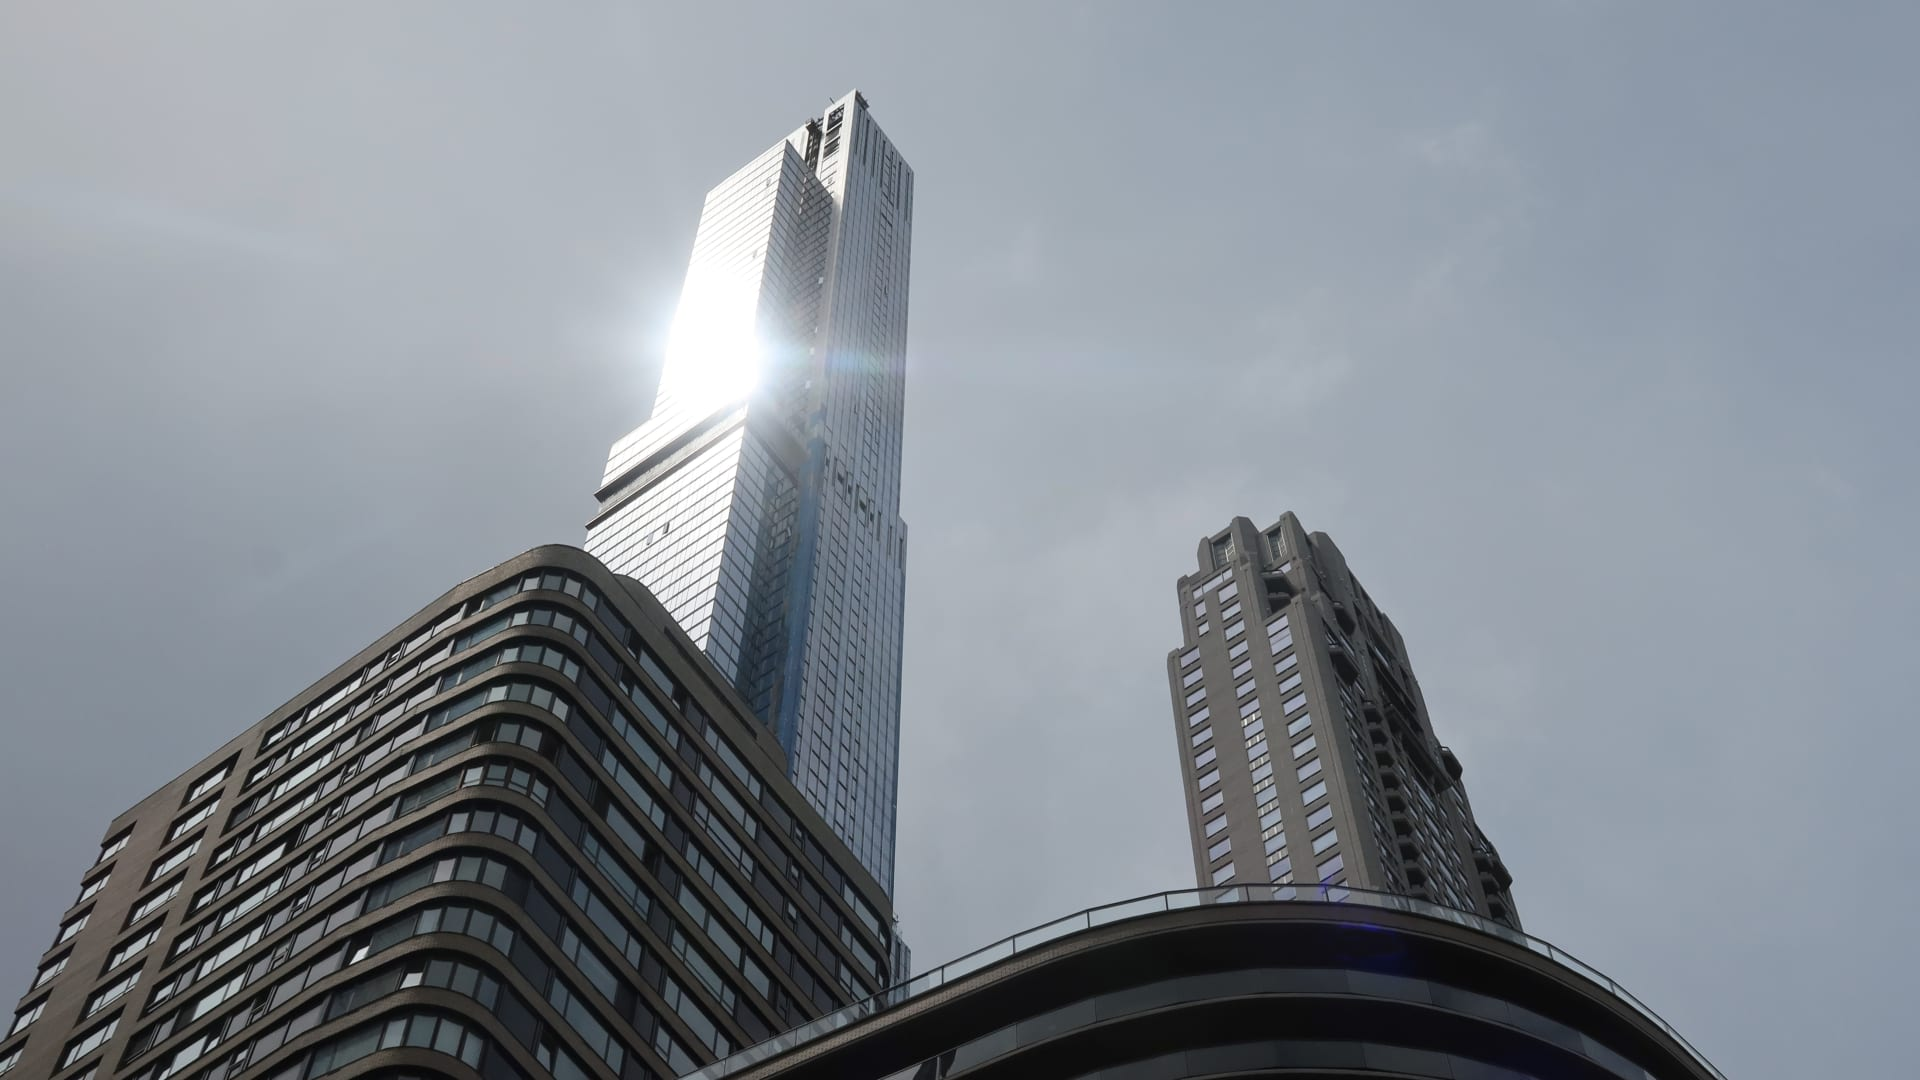 Central Park Tower and 220 Central Park South rise above 57th Street on May 16, 2021 in New York City.